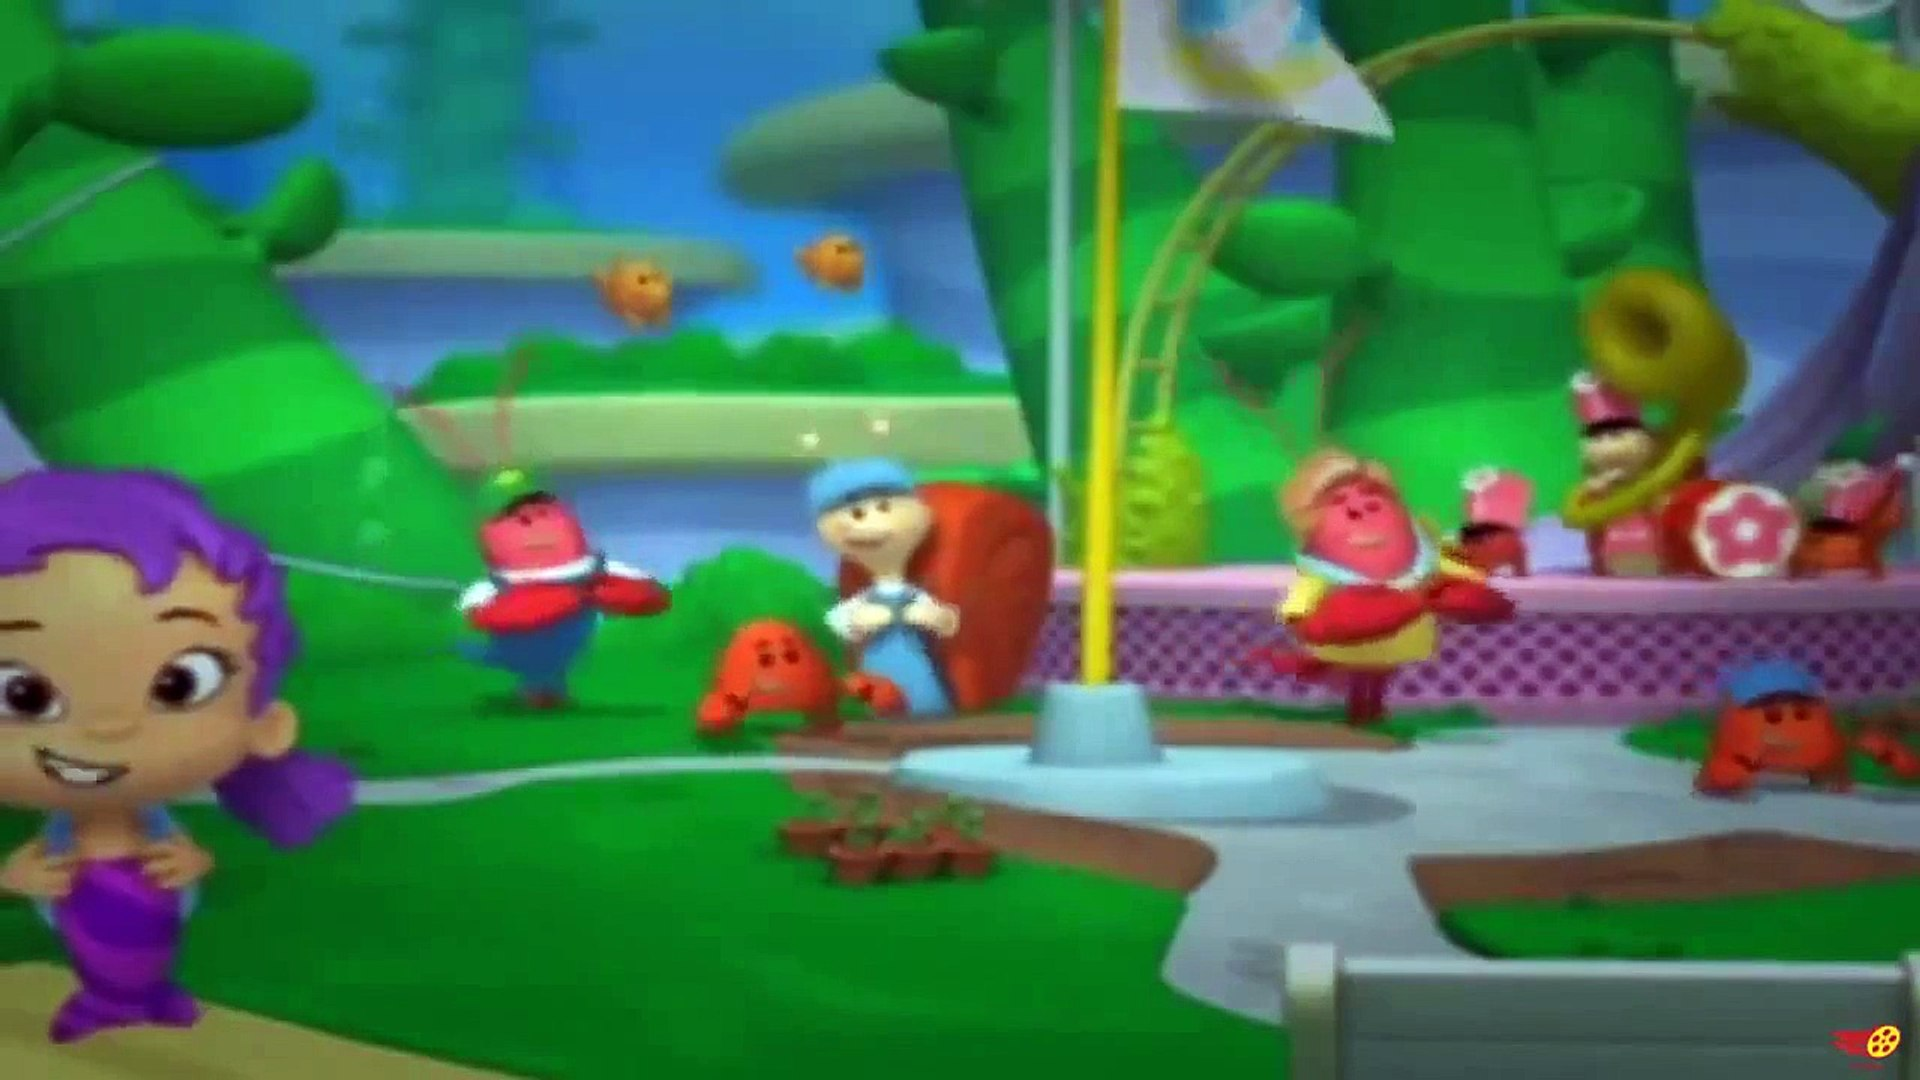 Bubble Guppies Season 1 Episode 13 The Spring Chicken is Coming!